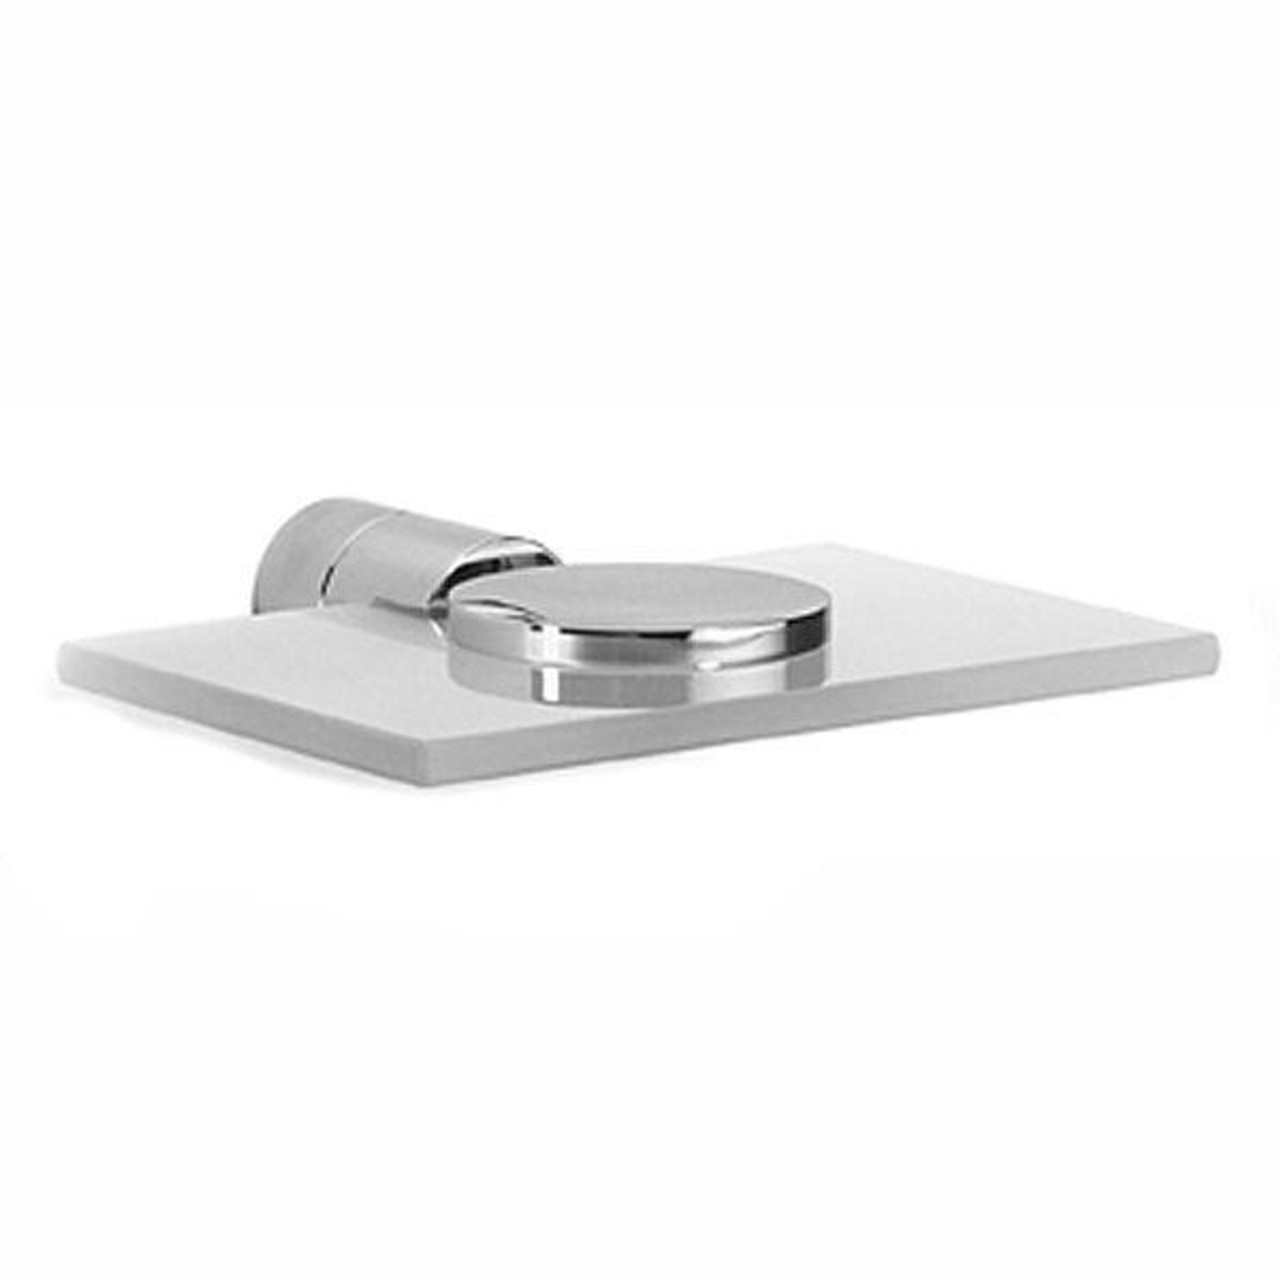 Chrome Plated Samuel Heath Xenon Soap Holder N5034